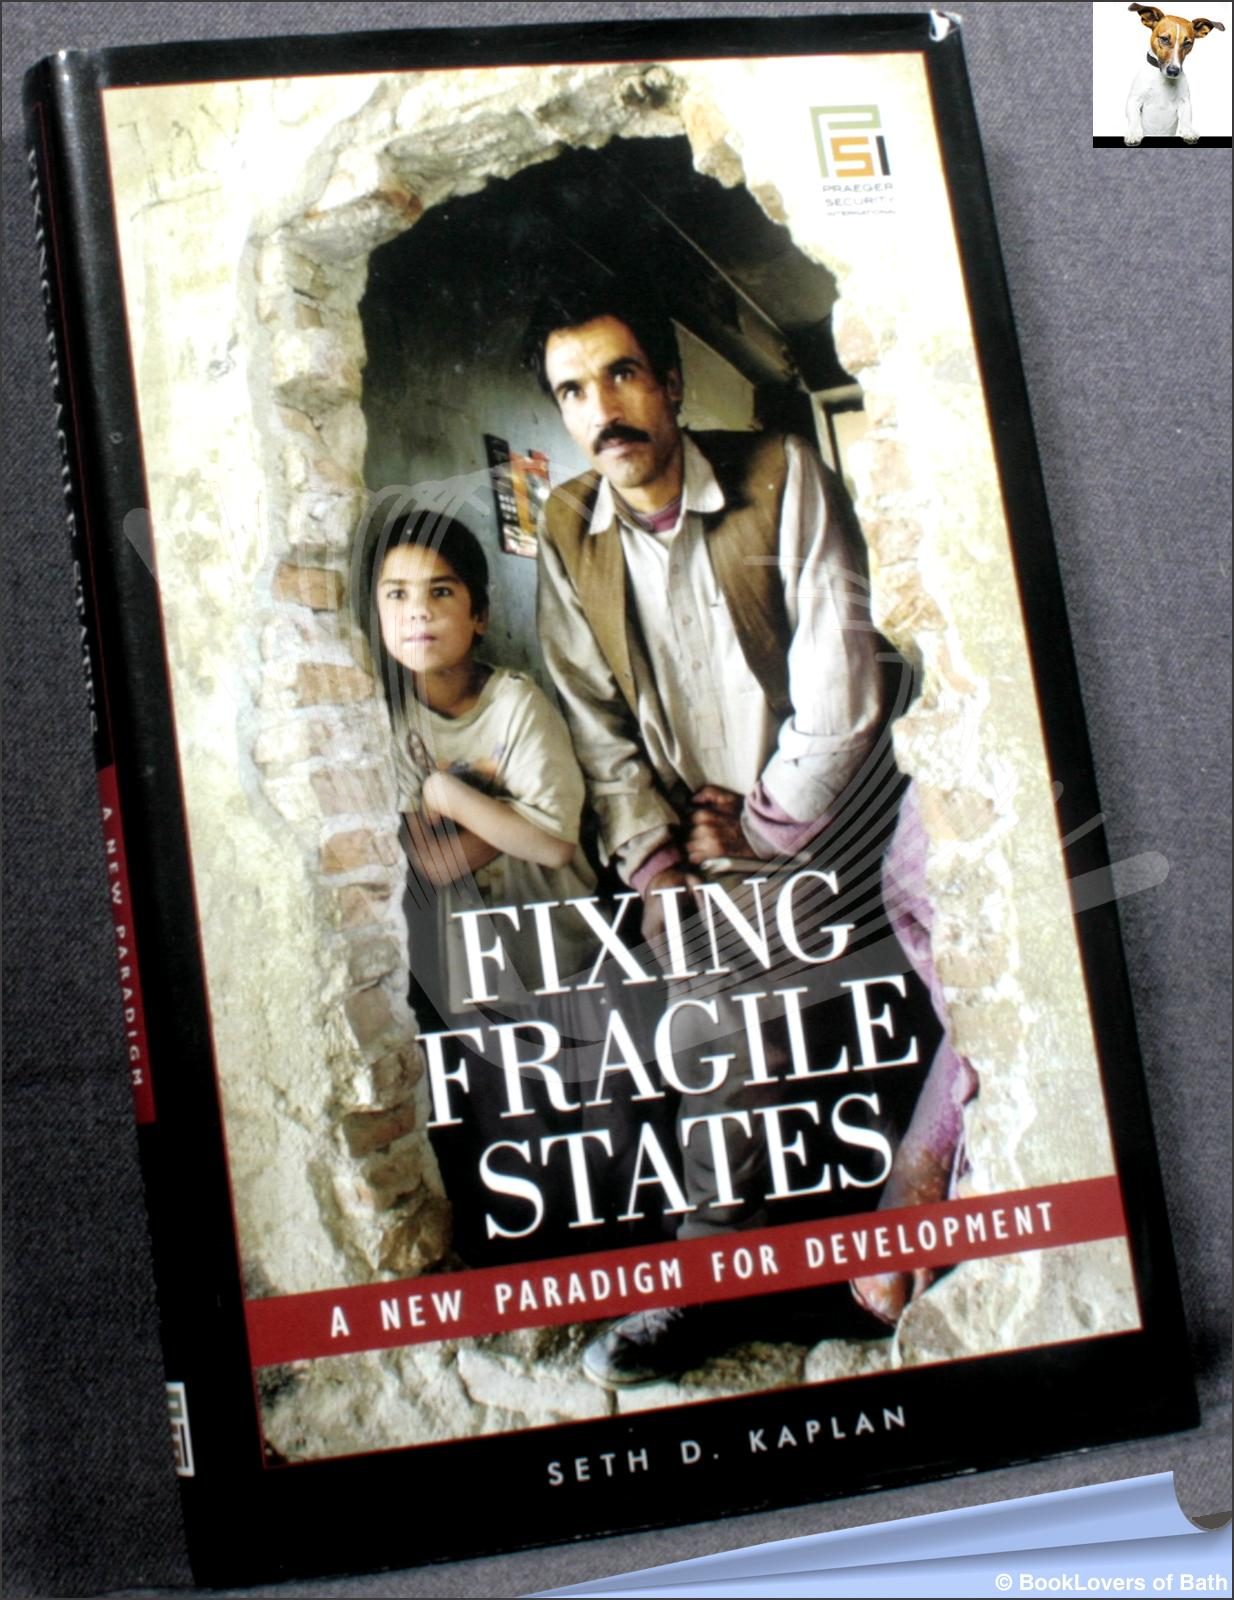 Fixing Fragile States: A New Paradigm for Development - Seth D. Kaplan